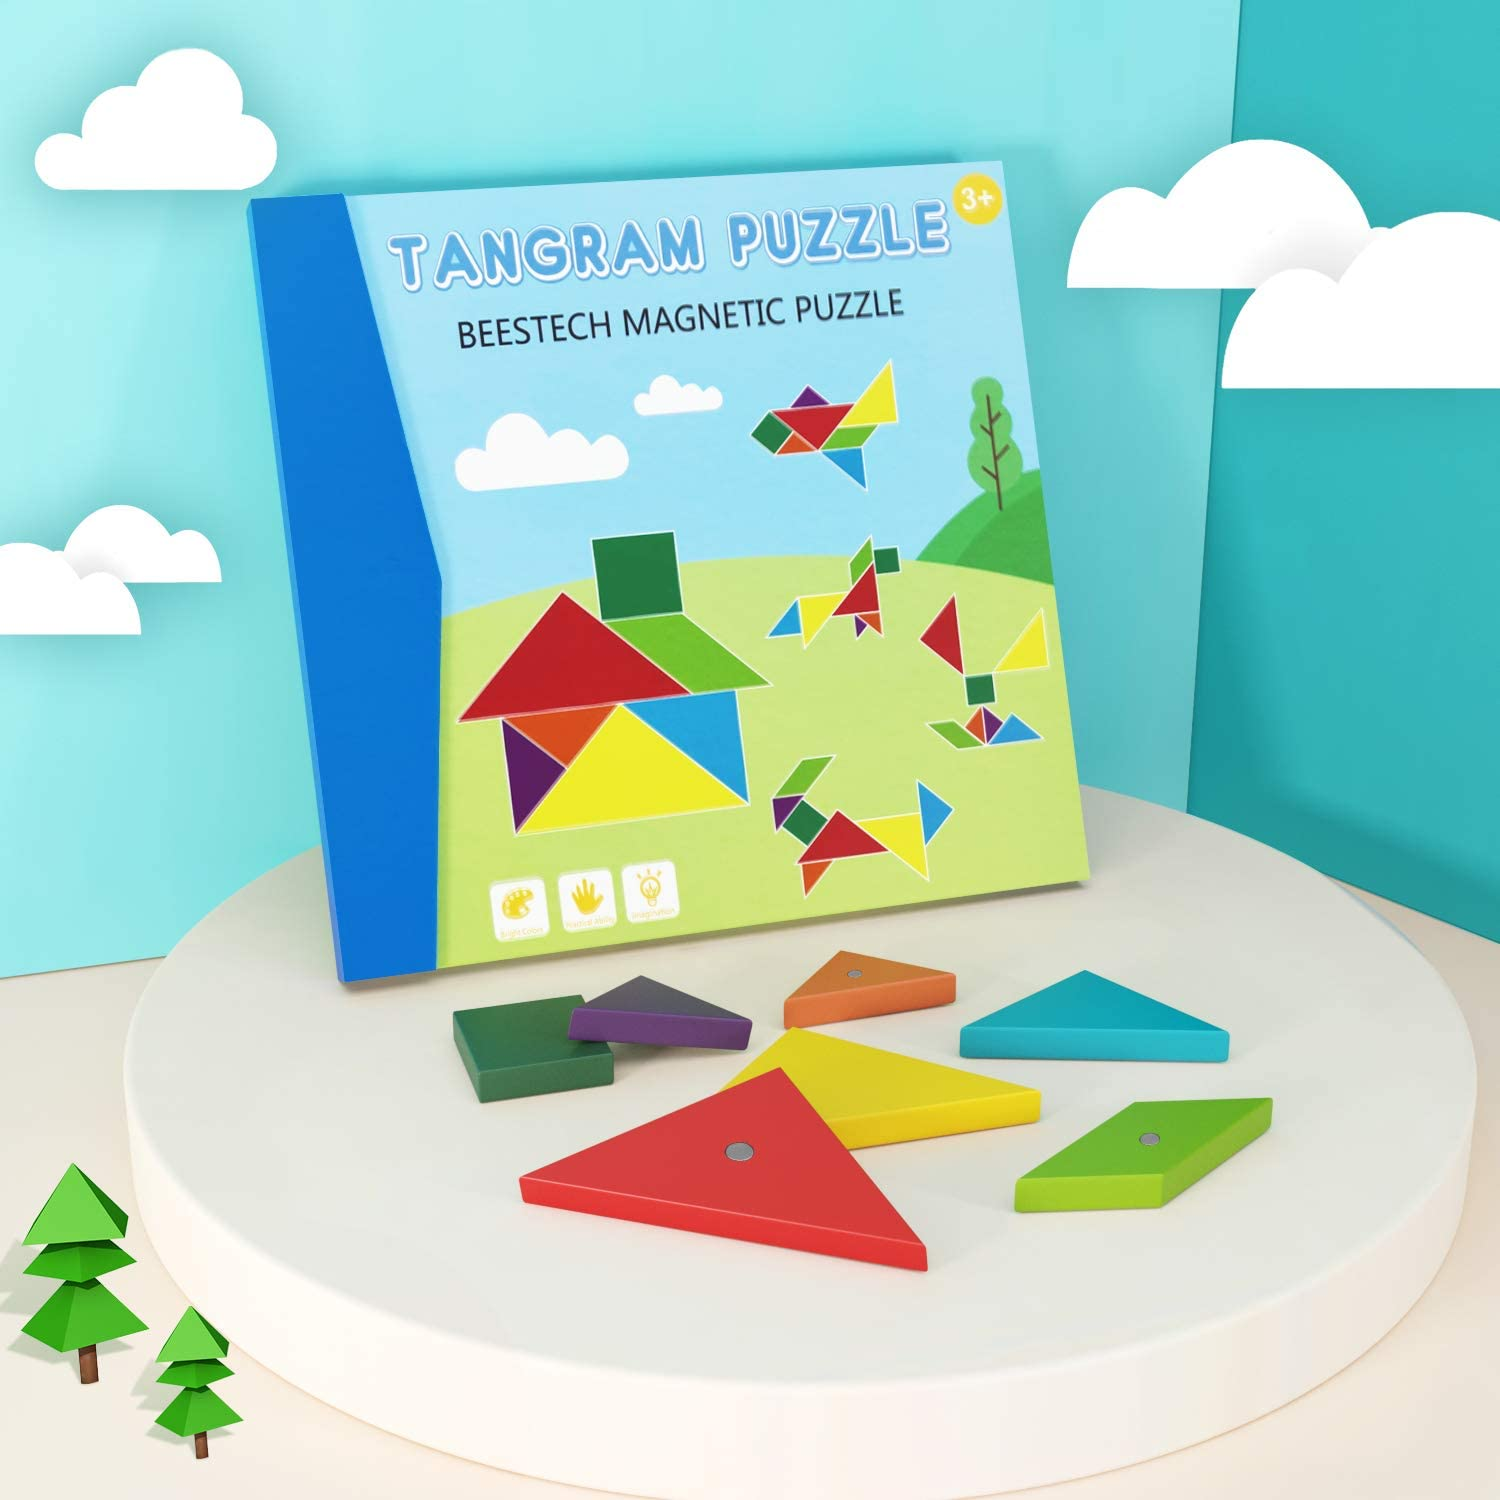 Plane or Take Out for Restaurant Conikus Wooden Pattern Tangram Magnetic Puzzle,Wooden Tangram Puzzle Book Toys for 3 4 5 6 7 8 Year Old Boys and Girls,Travel Games for Kids in Car